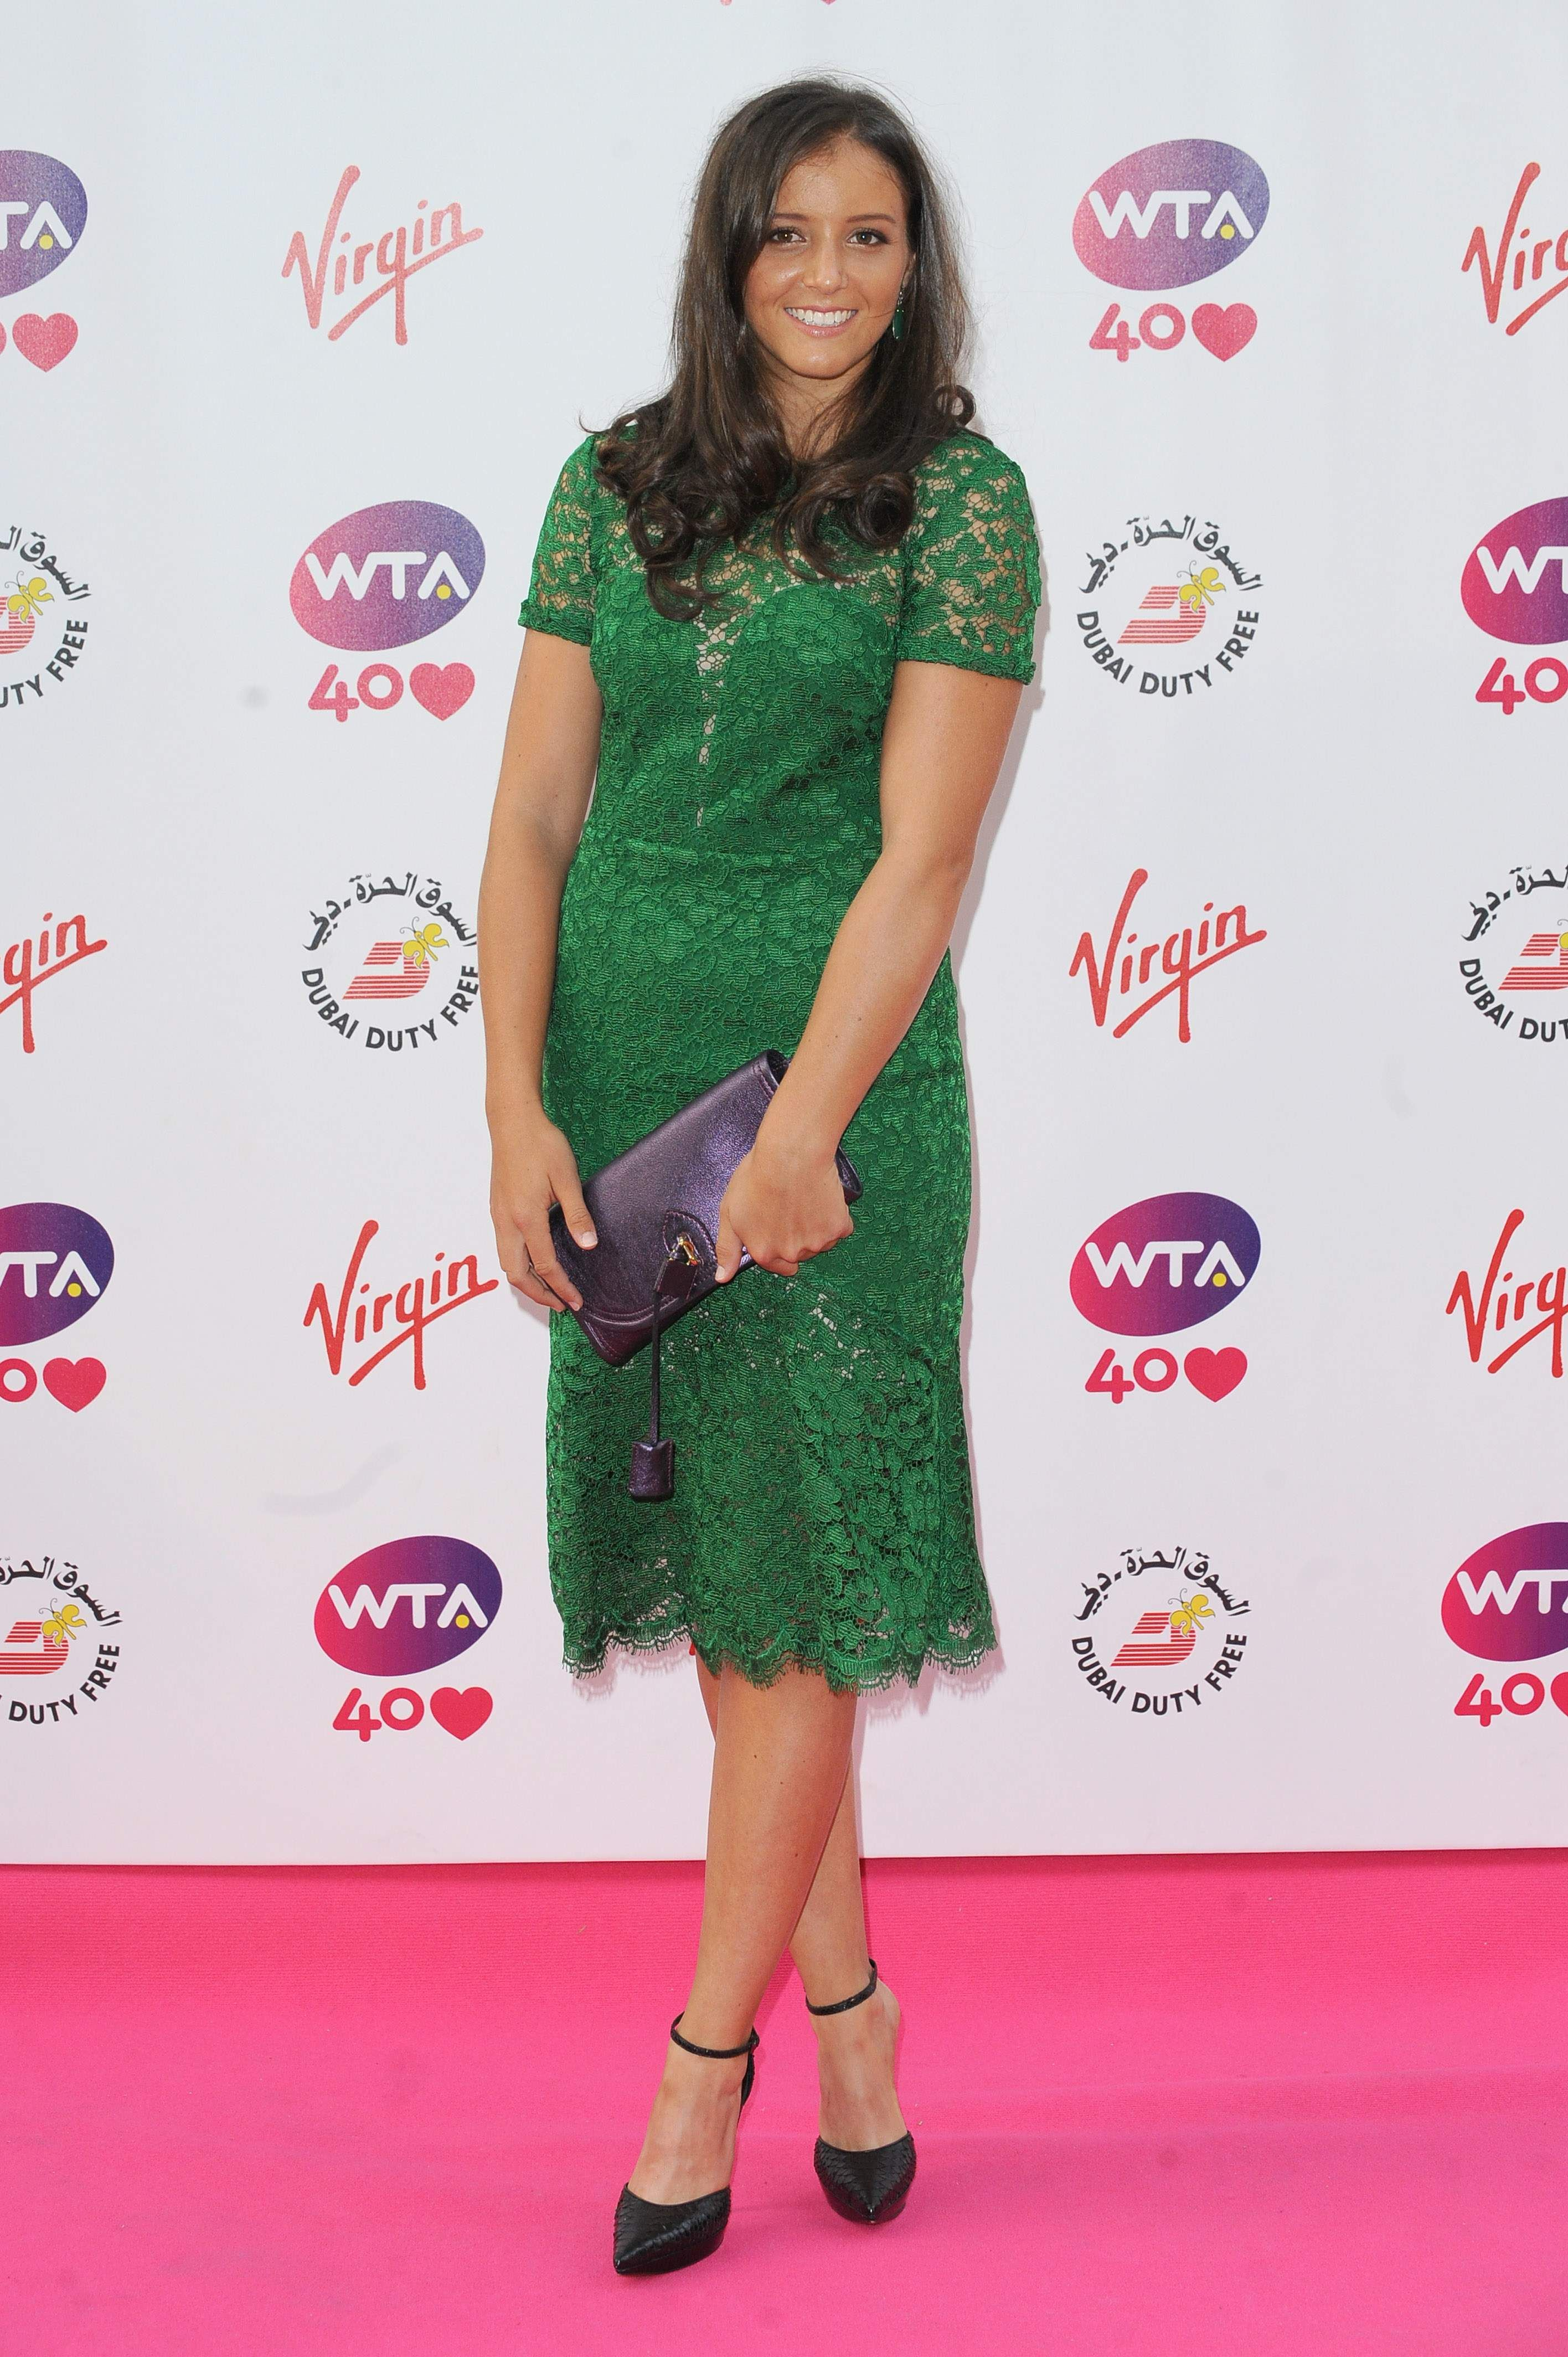 Laura Robson Pre Wimbledon Party Held At The Kensington Roof Gardens June 20 2013 Wta Wimbledon Party Cocktail Dress Lace Fashion